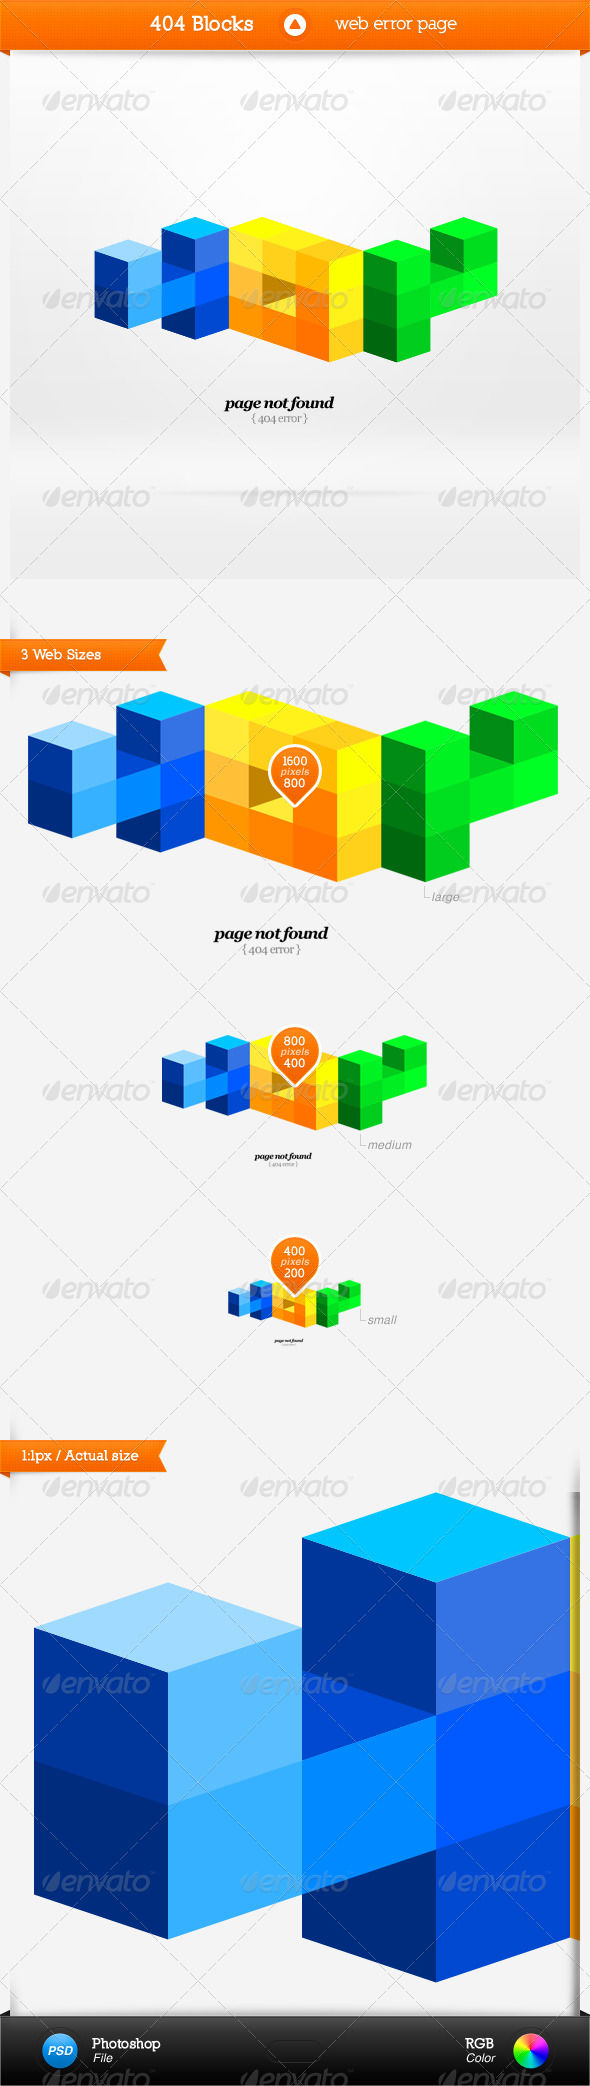 Blocks by AddtoFavorites (layered 404 page template)